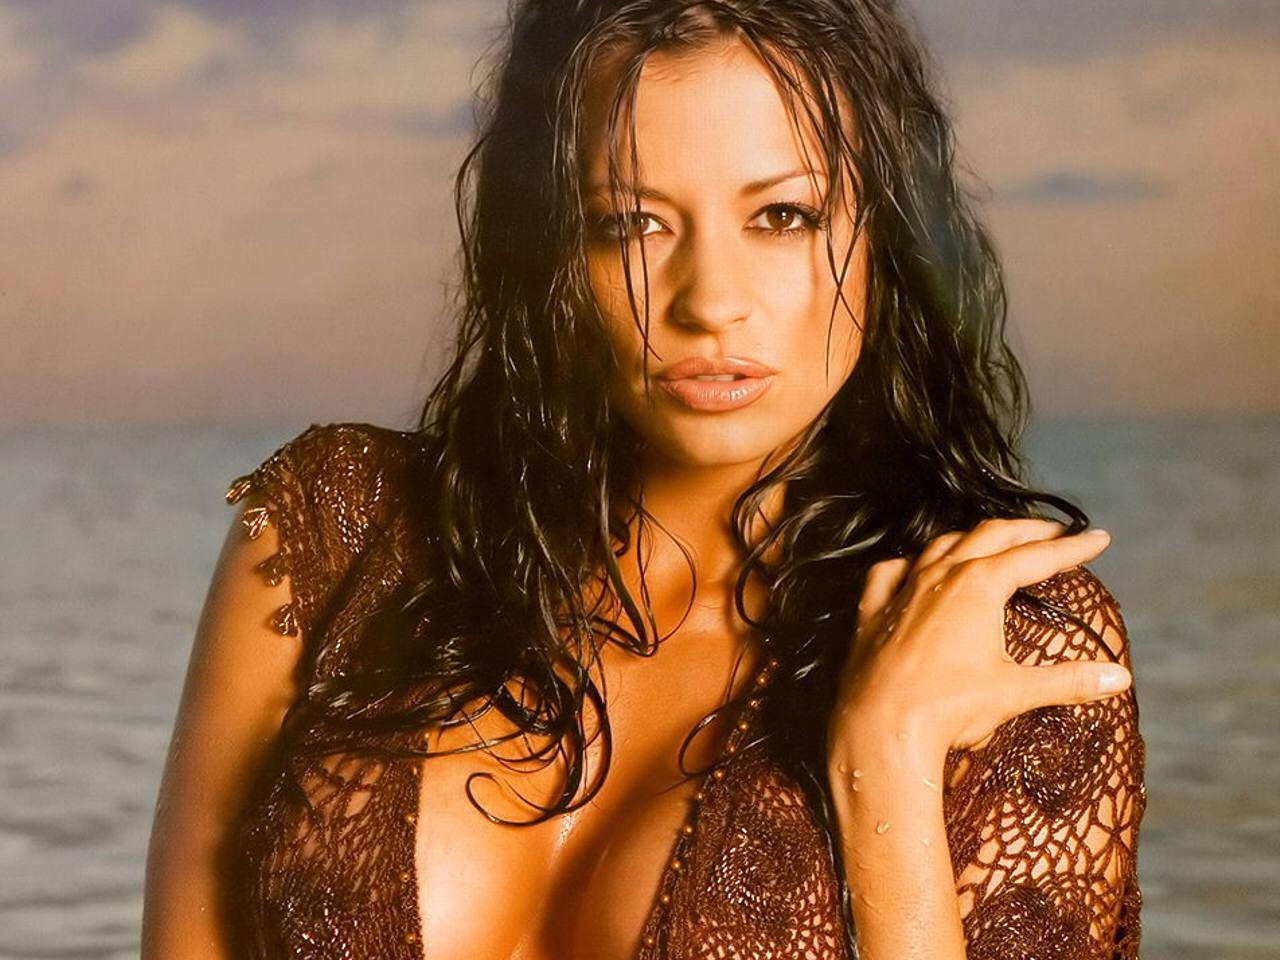 Download High quality Candice Michelle wallpaper / Celebrities Female /